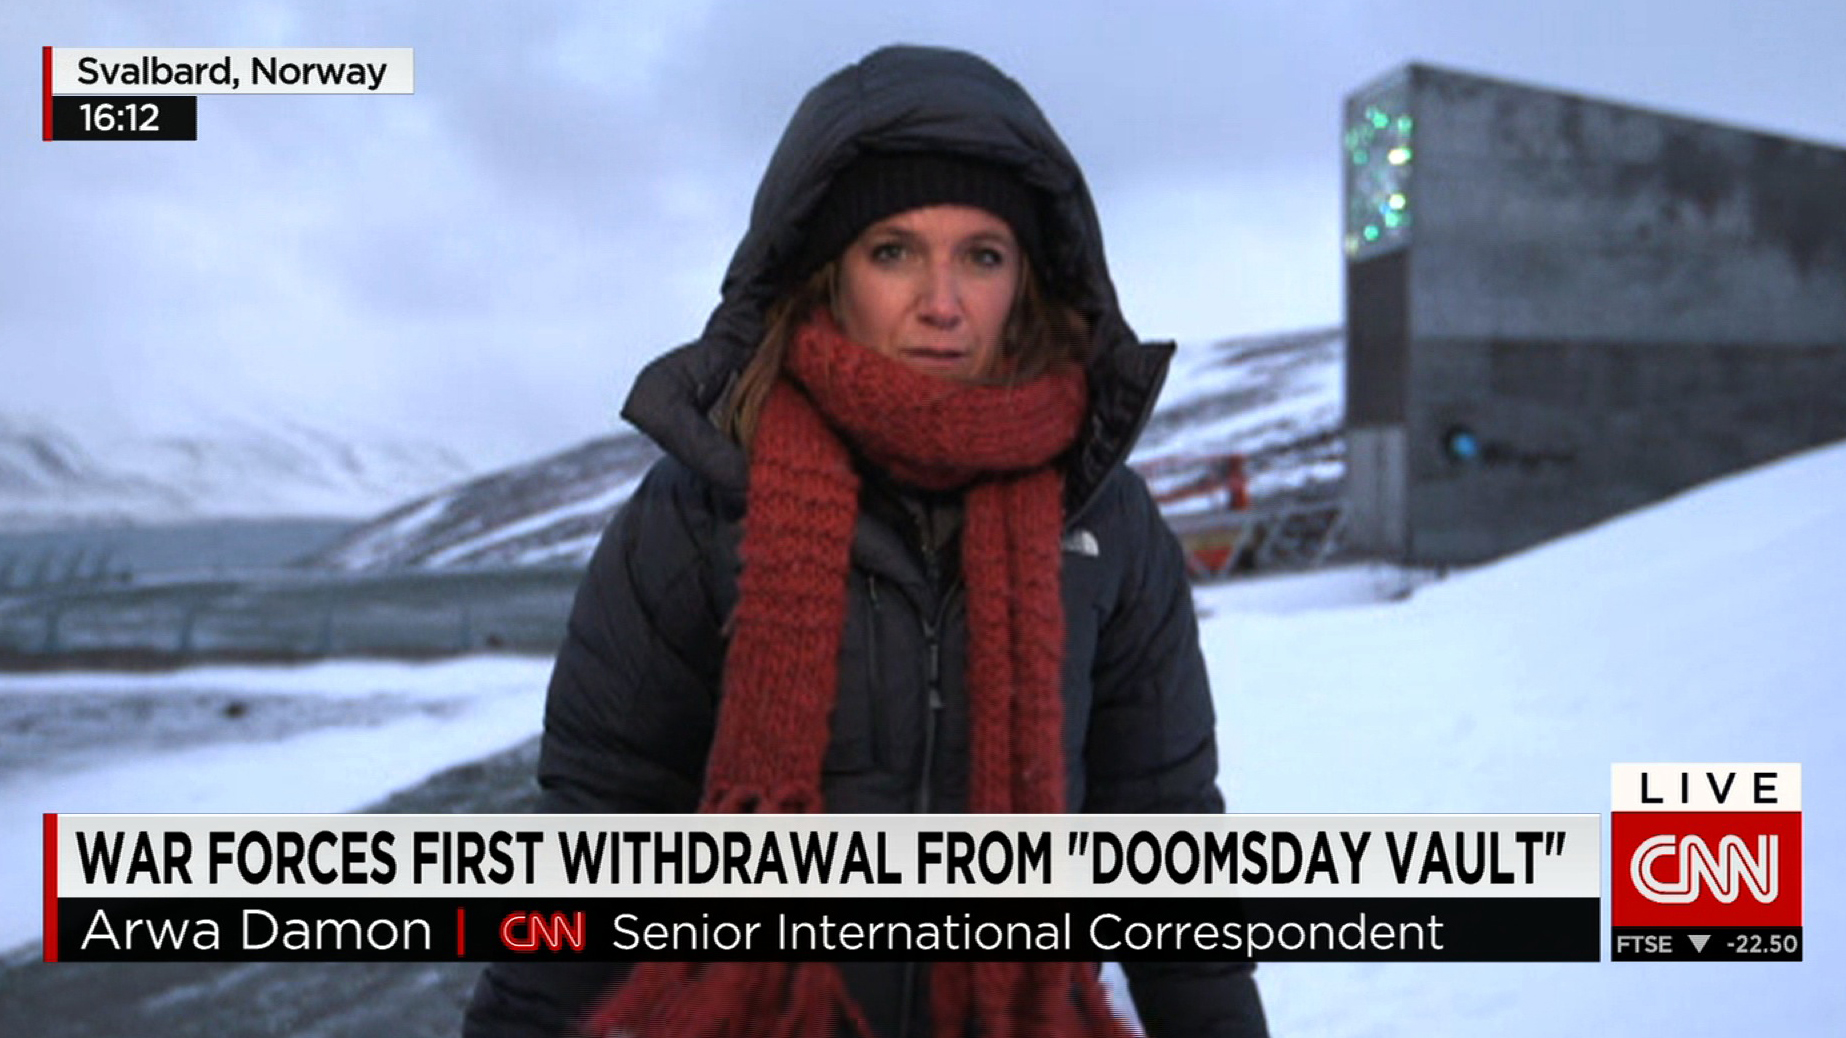 CNN's Arwa Damon reports from 'Doomsday' seed vault in Arctic as Syrian civil war forces early withdrawal